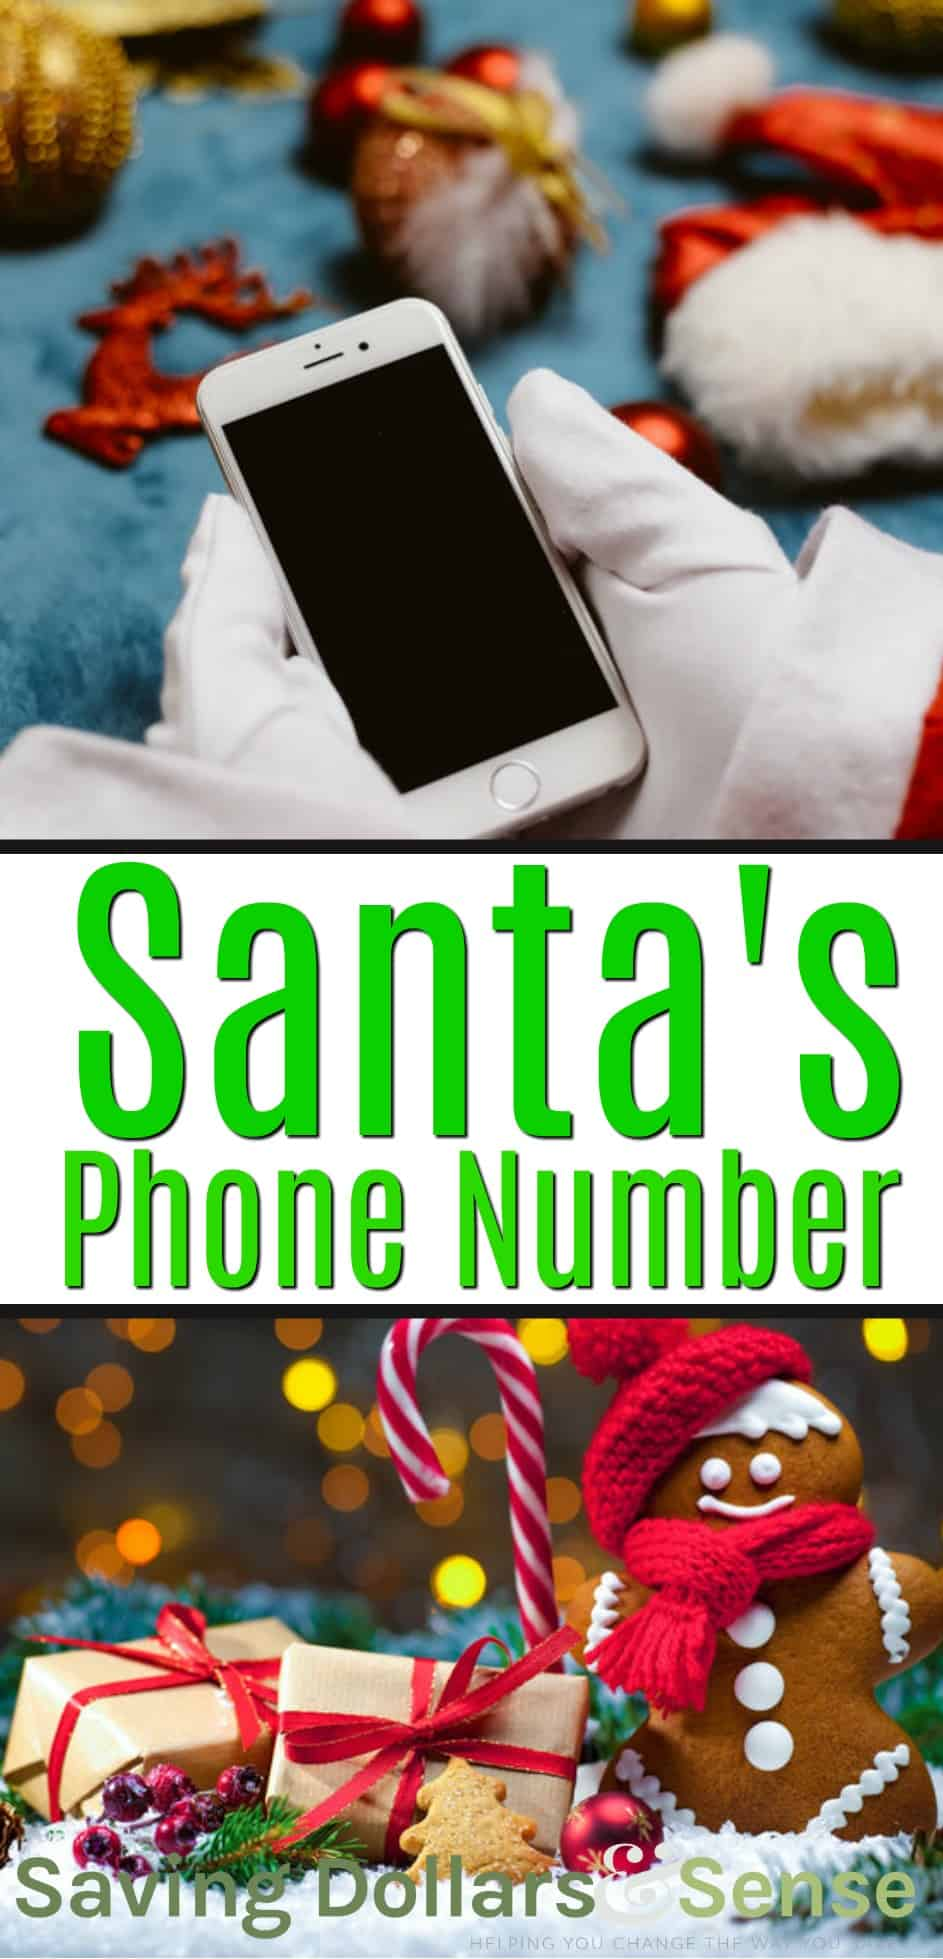 what is santa claus's phone number